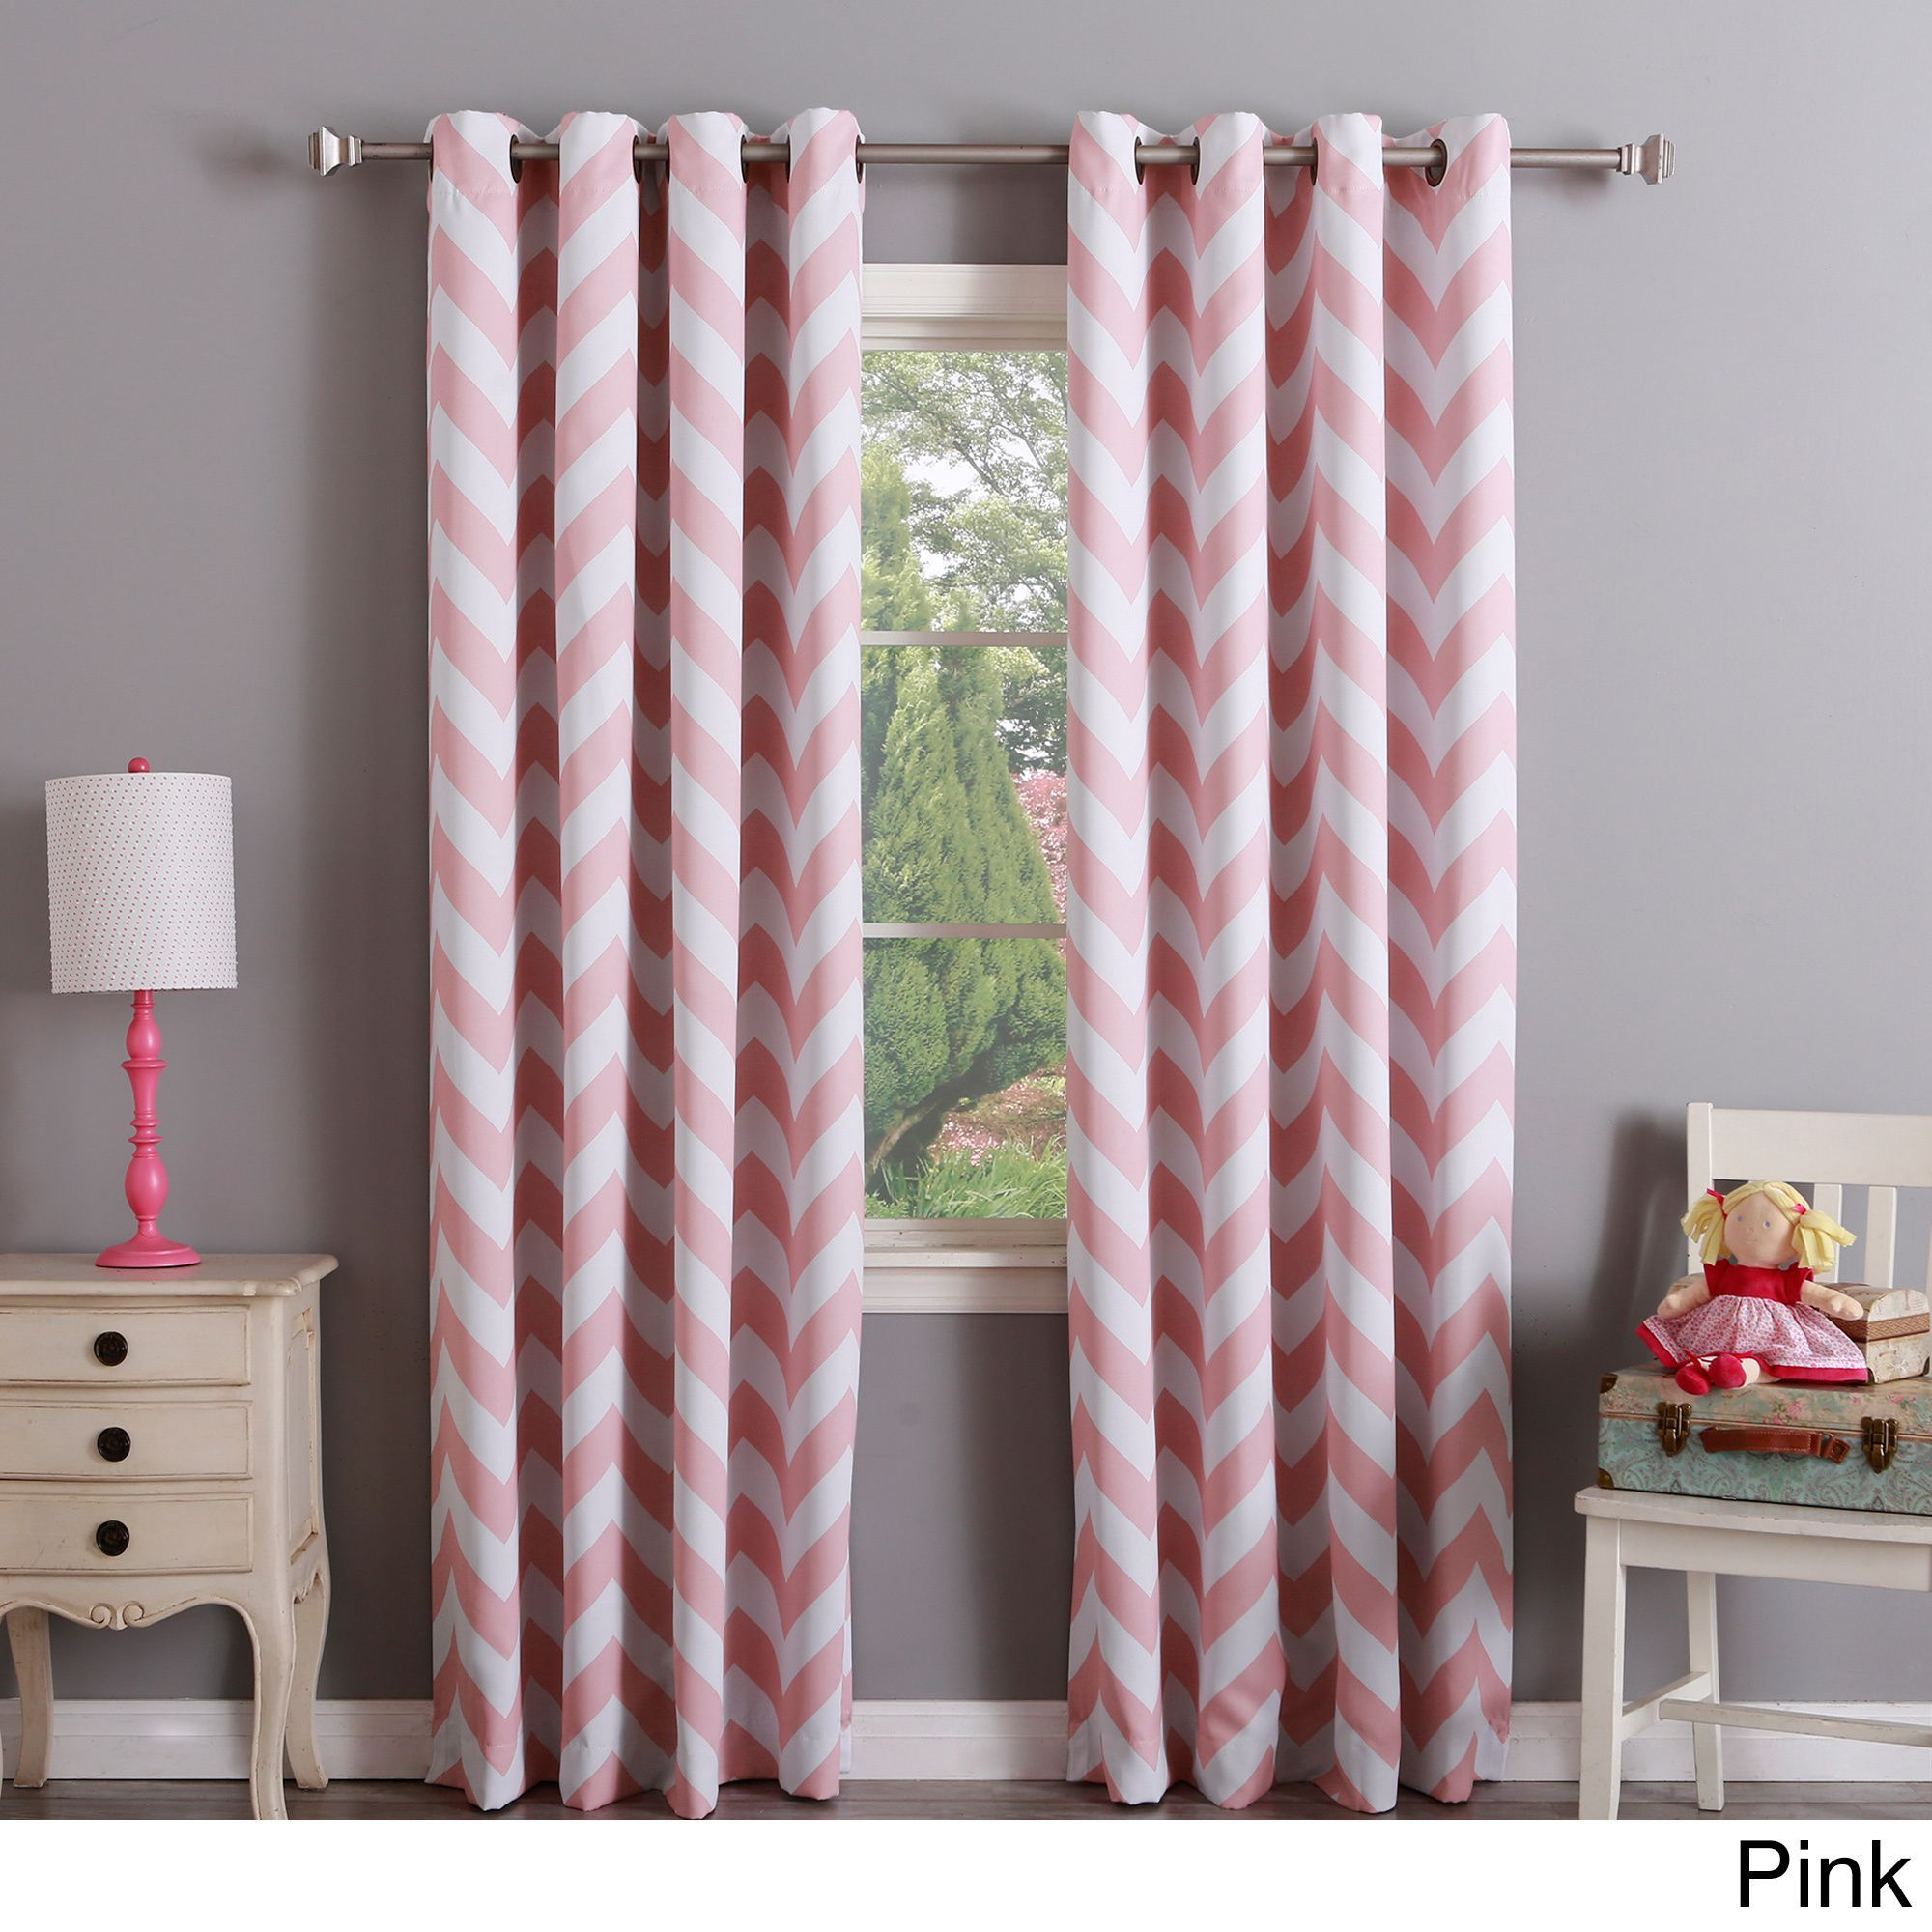 Aurora Home Chevron Print Room Darkening Curtain Panel Pair Pink 108 Inch Size 52 X